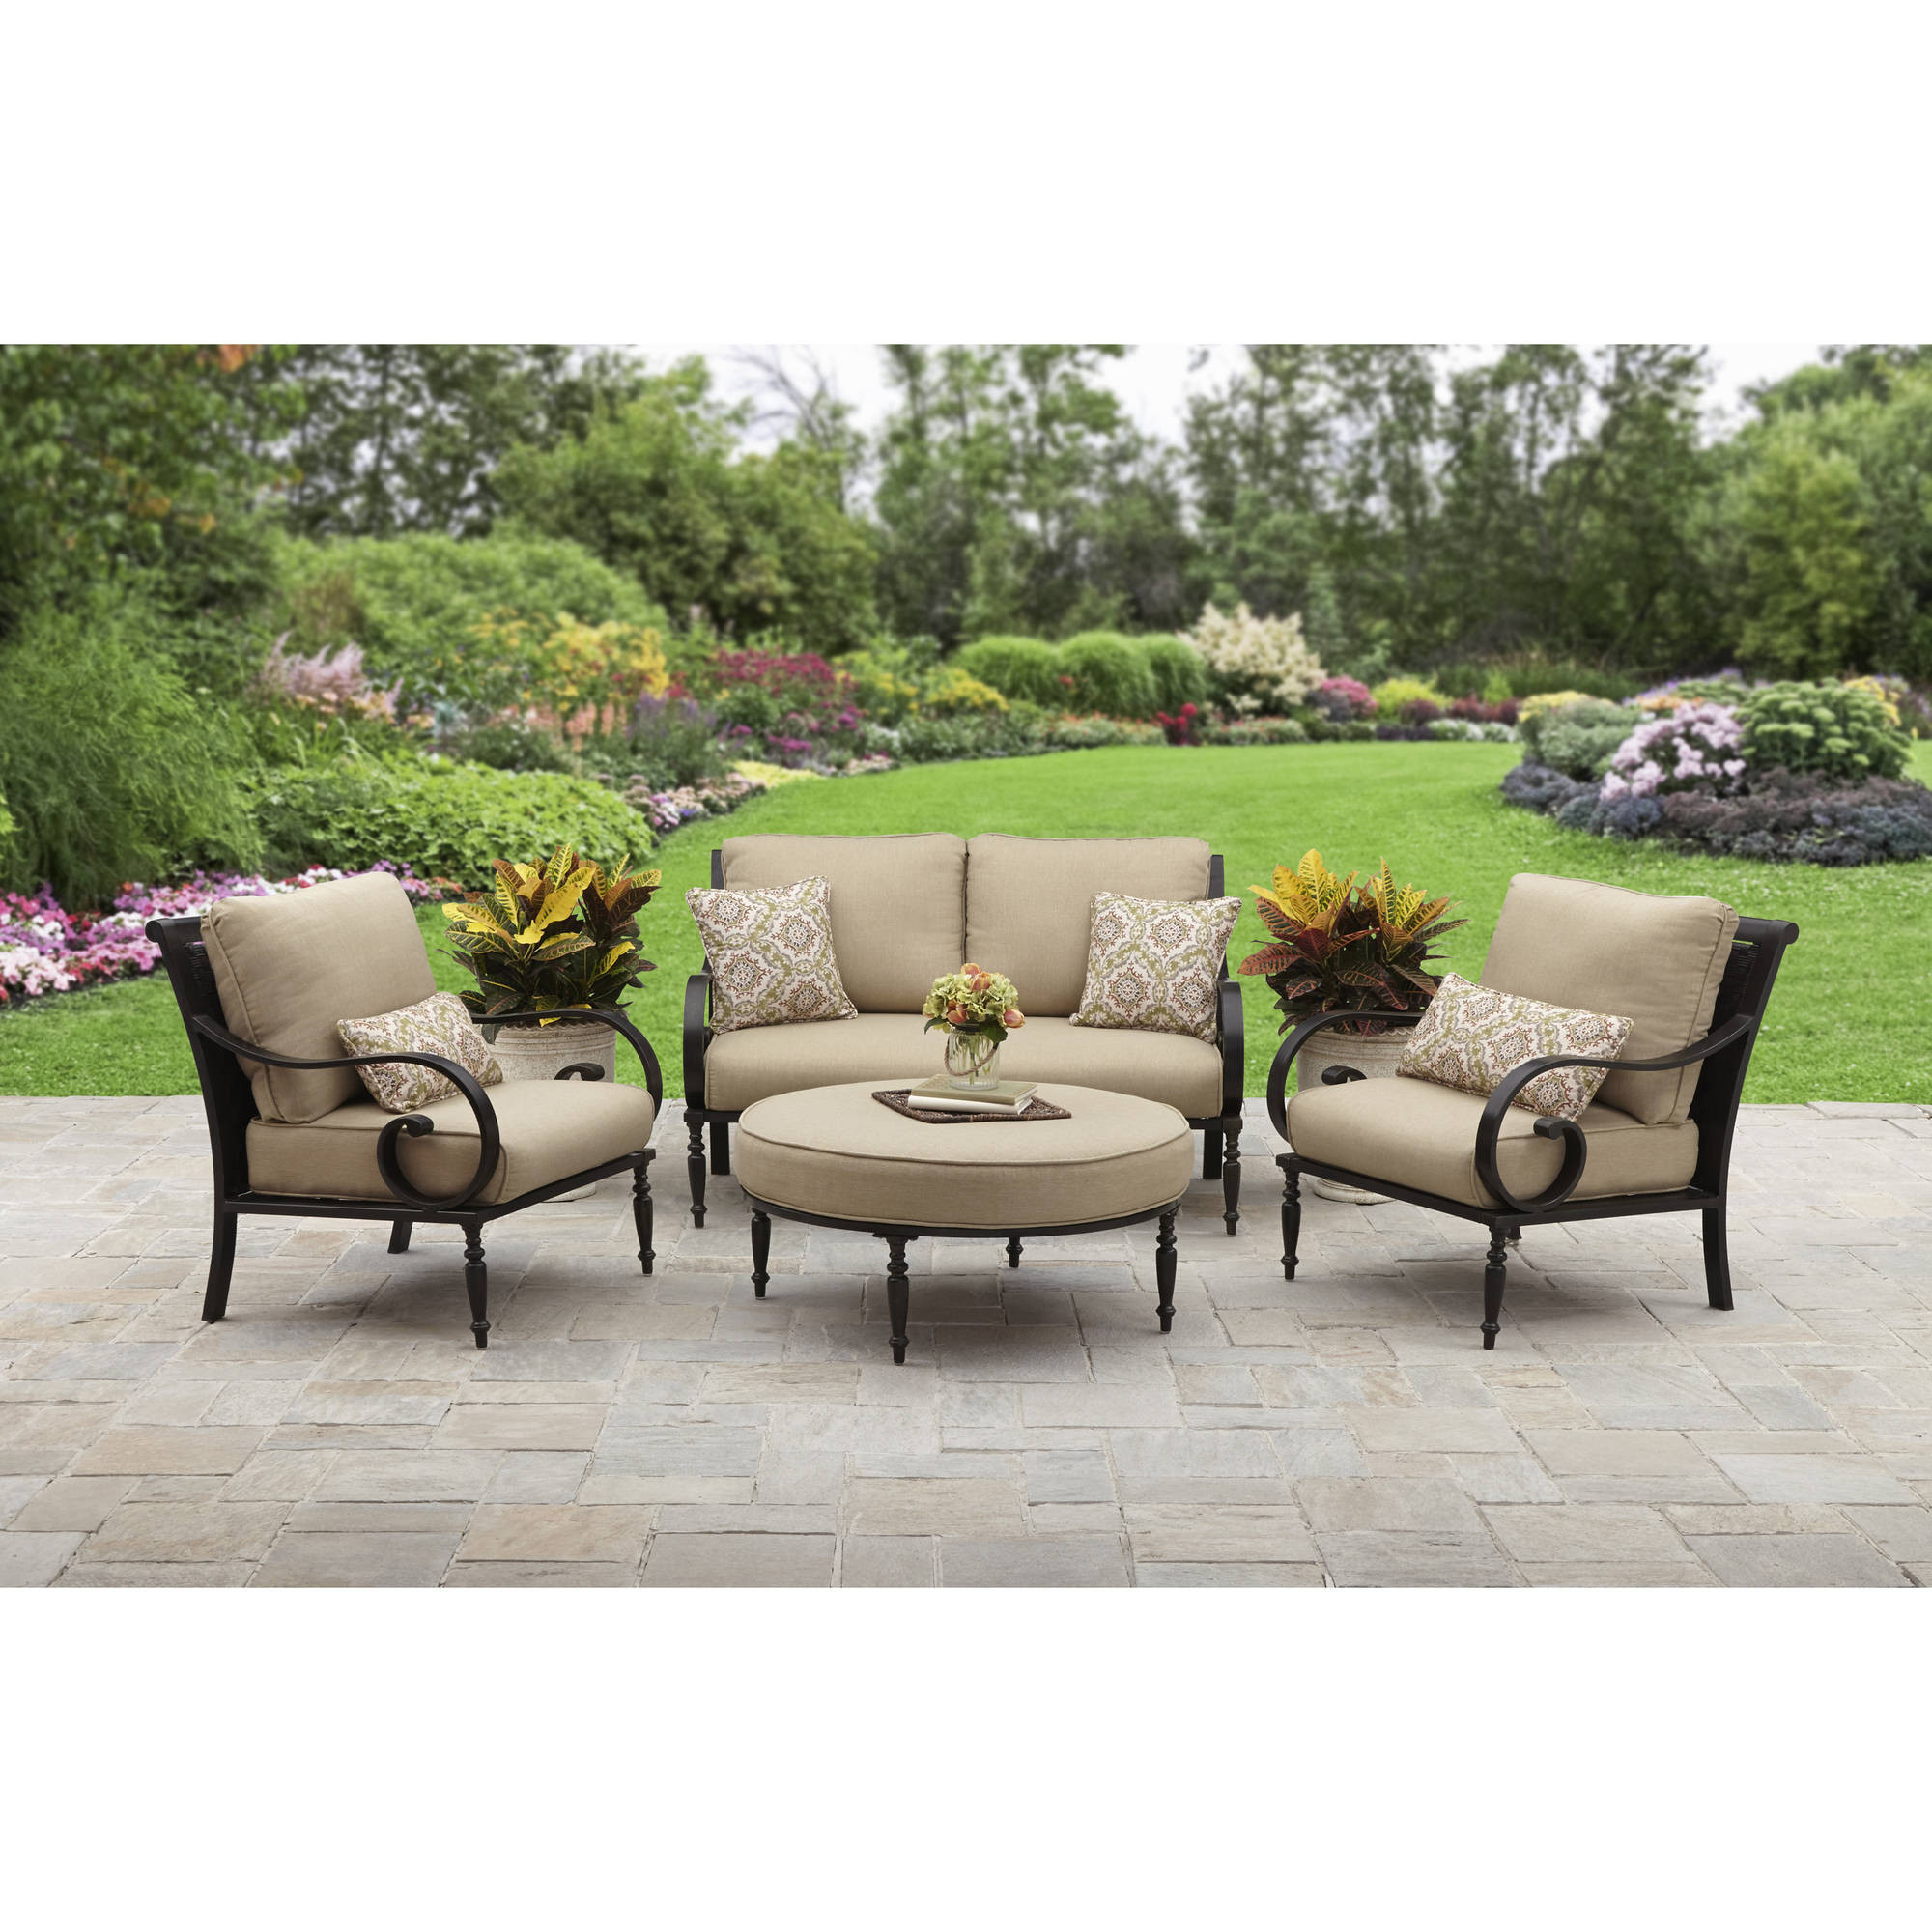 Best ideas about Better Homes And Gardens Patio Cushions . Save or Pin Better Homes And Gardens Englewood Heights Ii Aluminum Now.